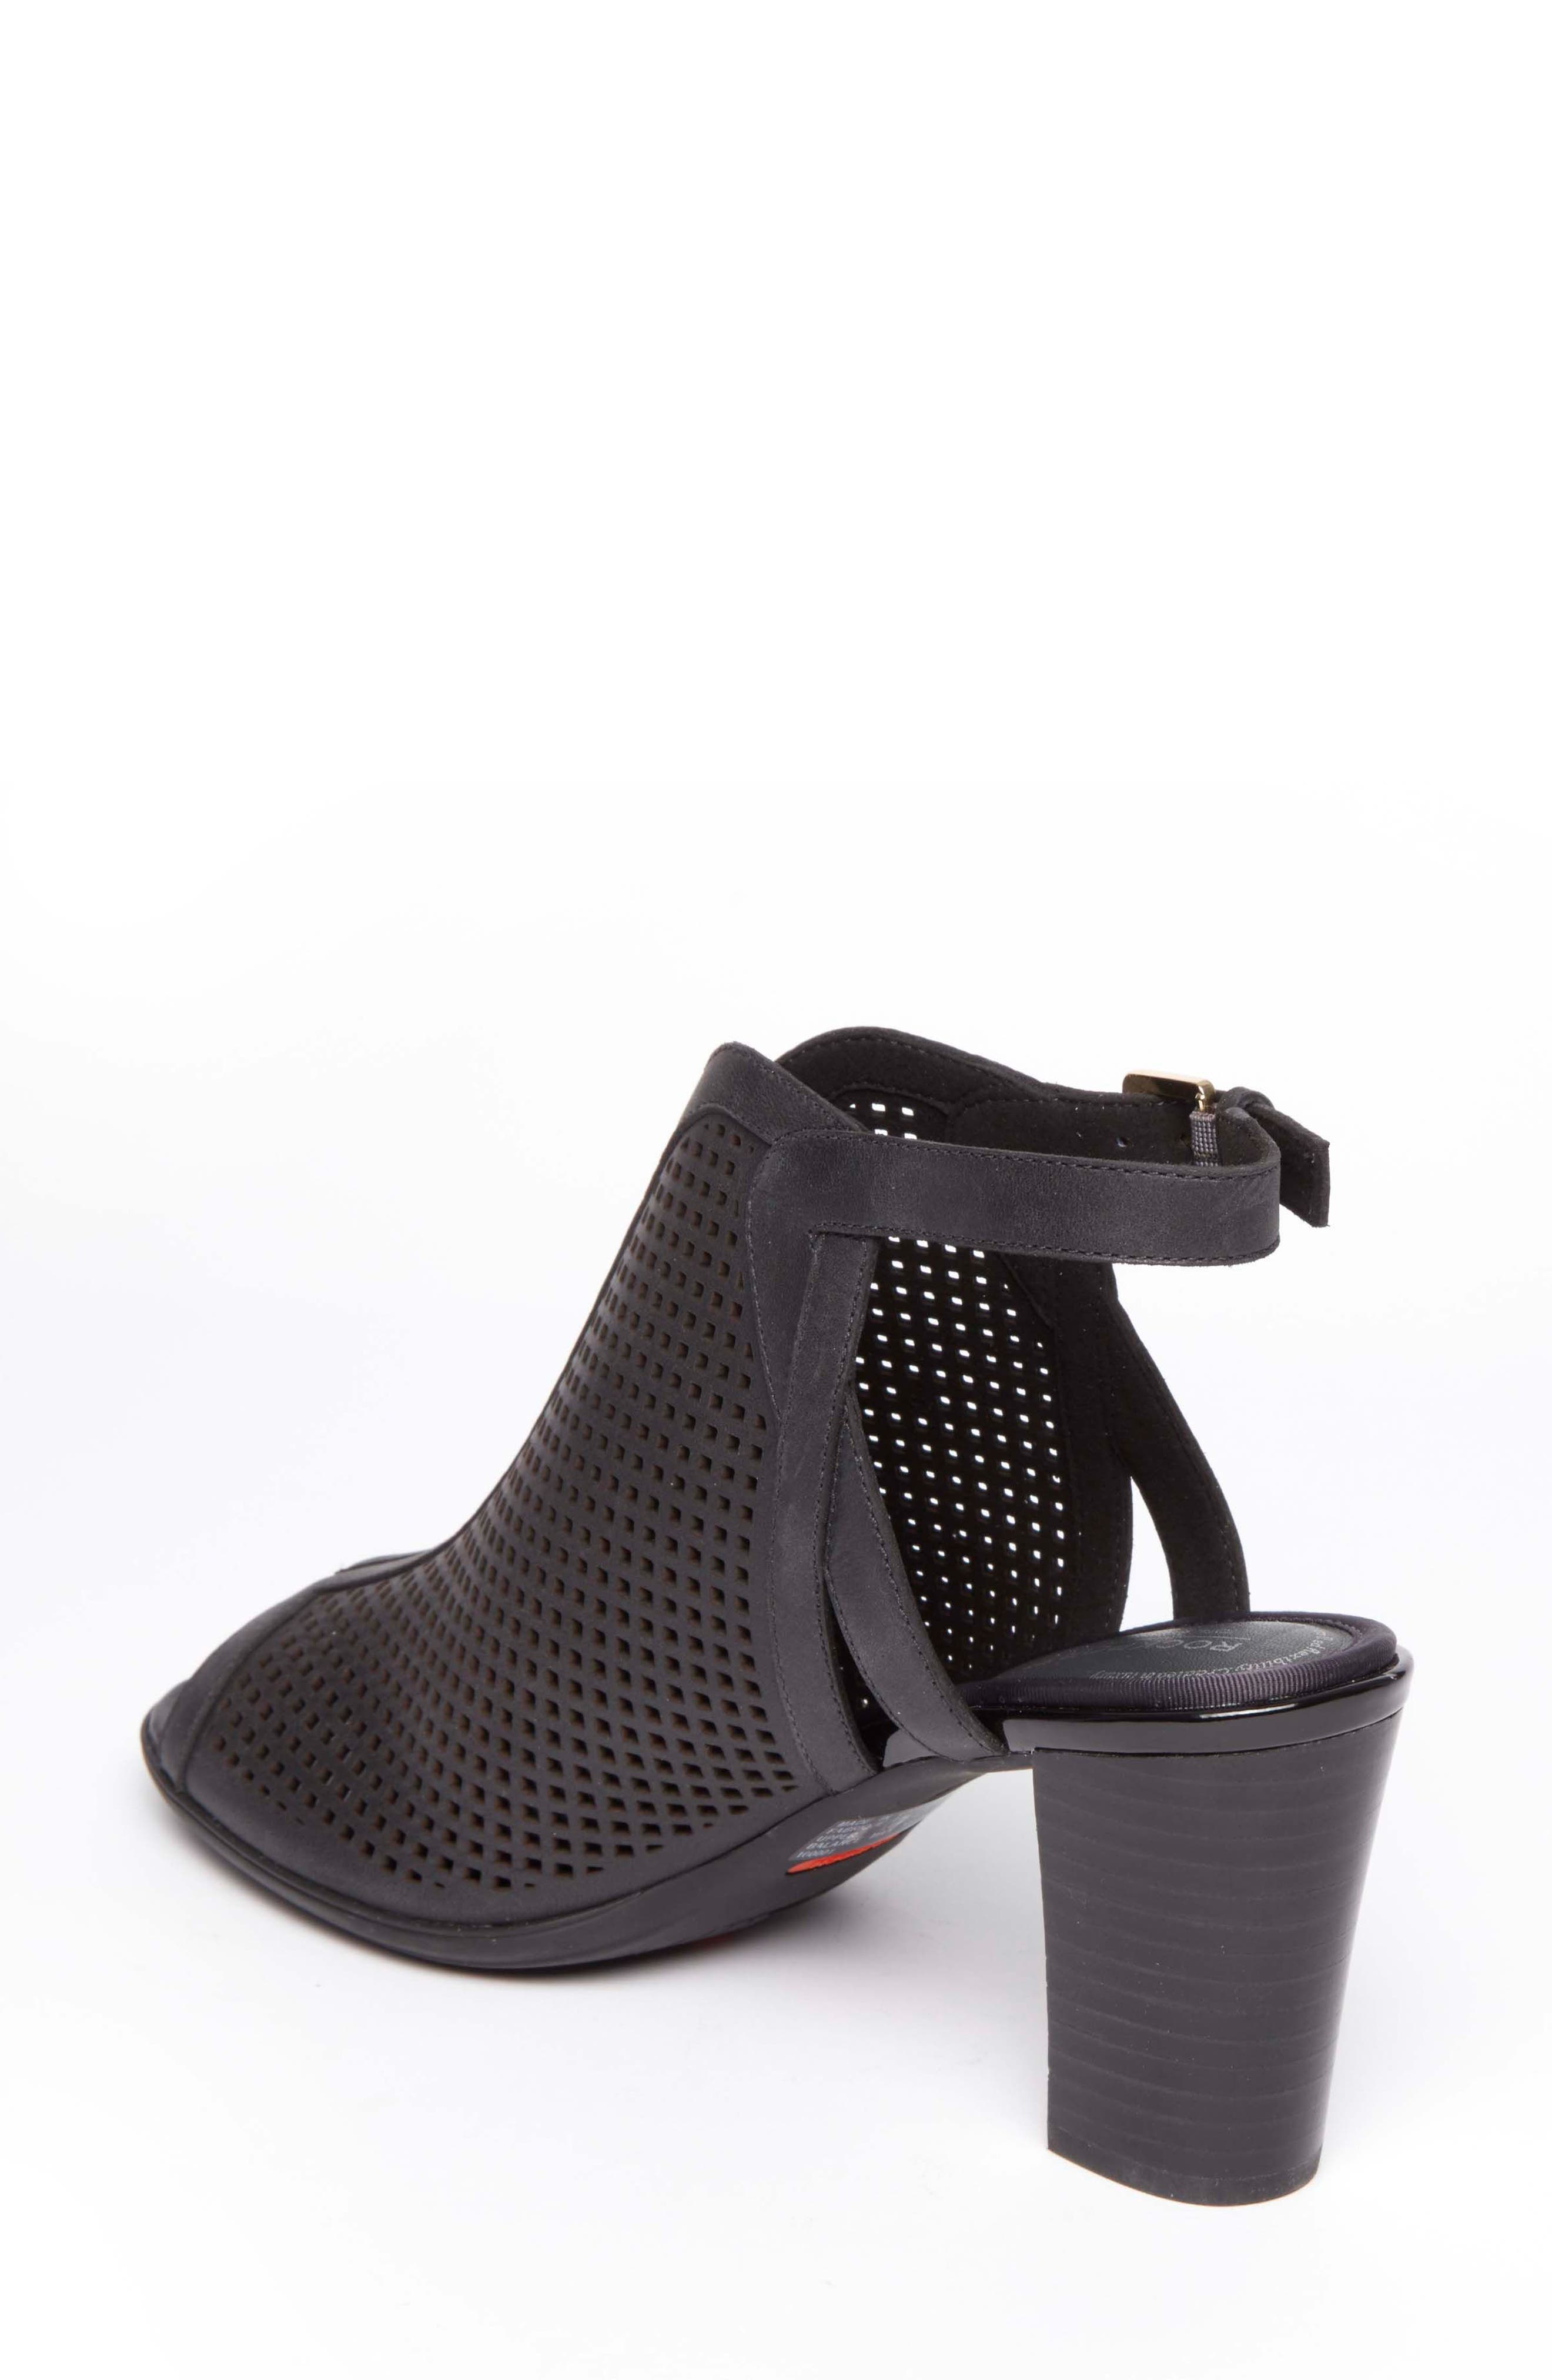 Total Motion Luxe Perforated Sandal,                             Alternate thumbnail 2, color,                             BLACK LEATHER